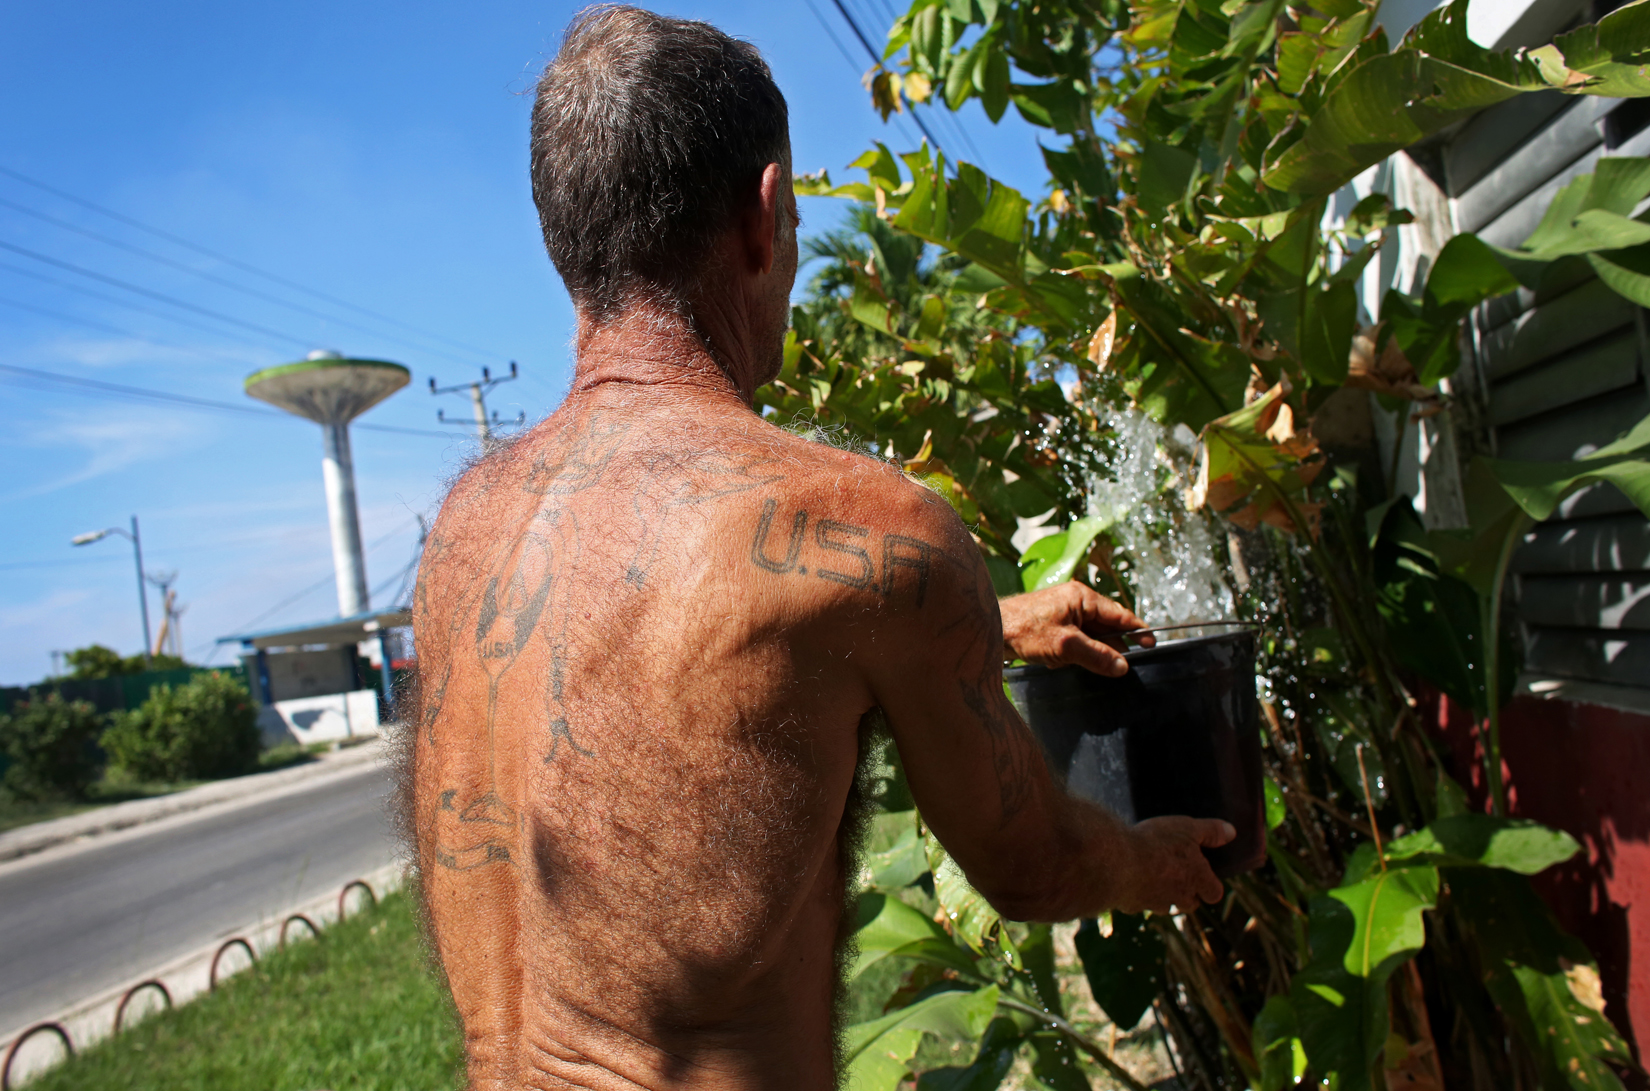 Jose Alonzo, sporting a USA tattoo, waters the plants in front of his house in the port city of Mariel, Cuba, a town whose tranquil appearance belies its important place in both the history and future of Cuban-American interaction. It is where Russians unloaded nuclear warheads in the 1962 Cuban missile crisis, and the gateway through which 125,000 Miami-bound emigres fled during the Mariel Boatlift of 1980. The town is now the site of construction of a deepwater container port and a free-trade zone, a critical ingredient for which will be the future of the U.S. embargo against Cuba, in place for more than 50 years but now under speculation of being lifted.